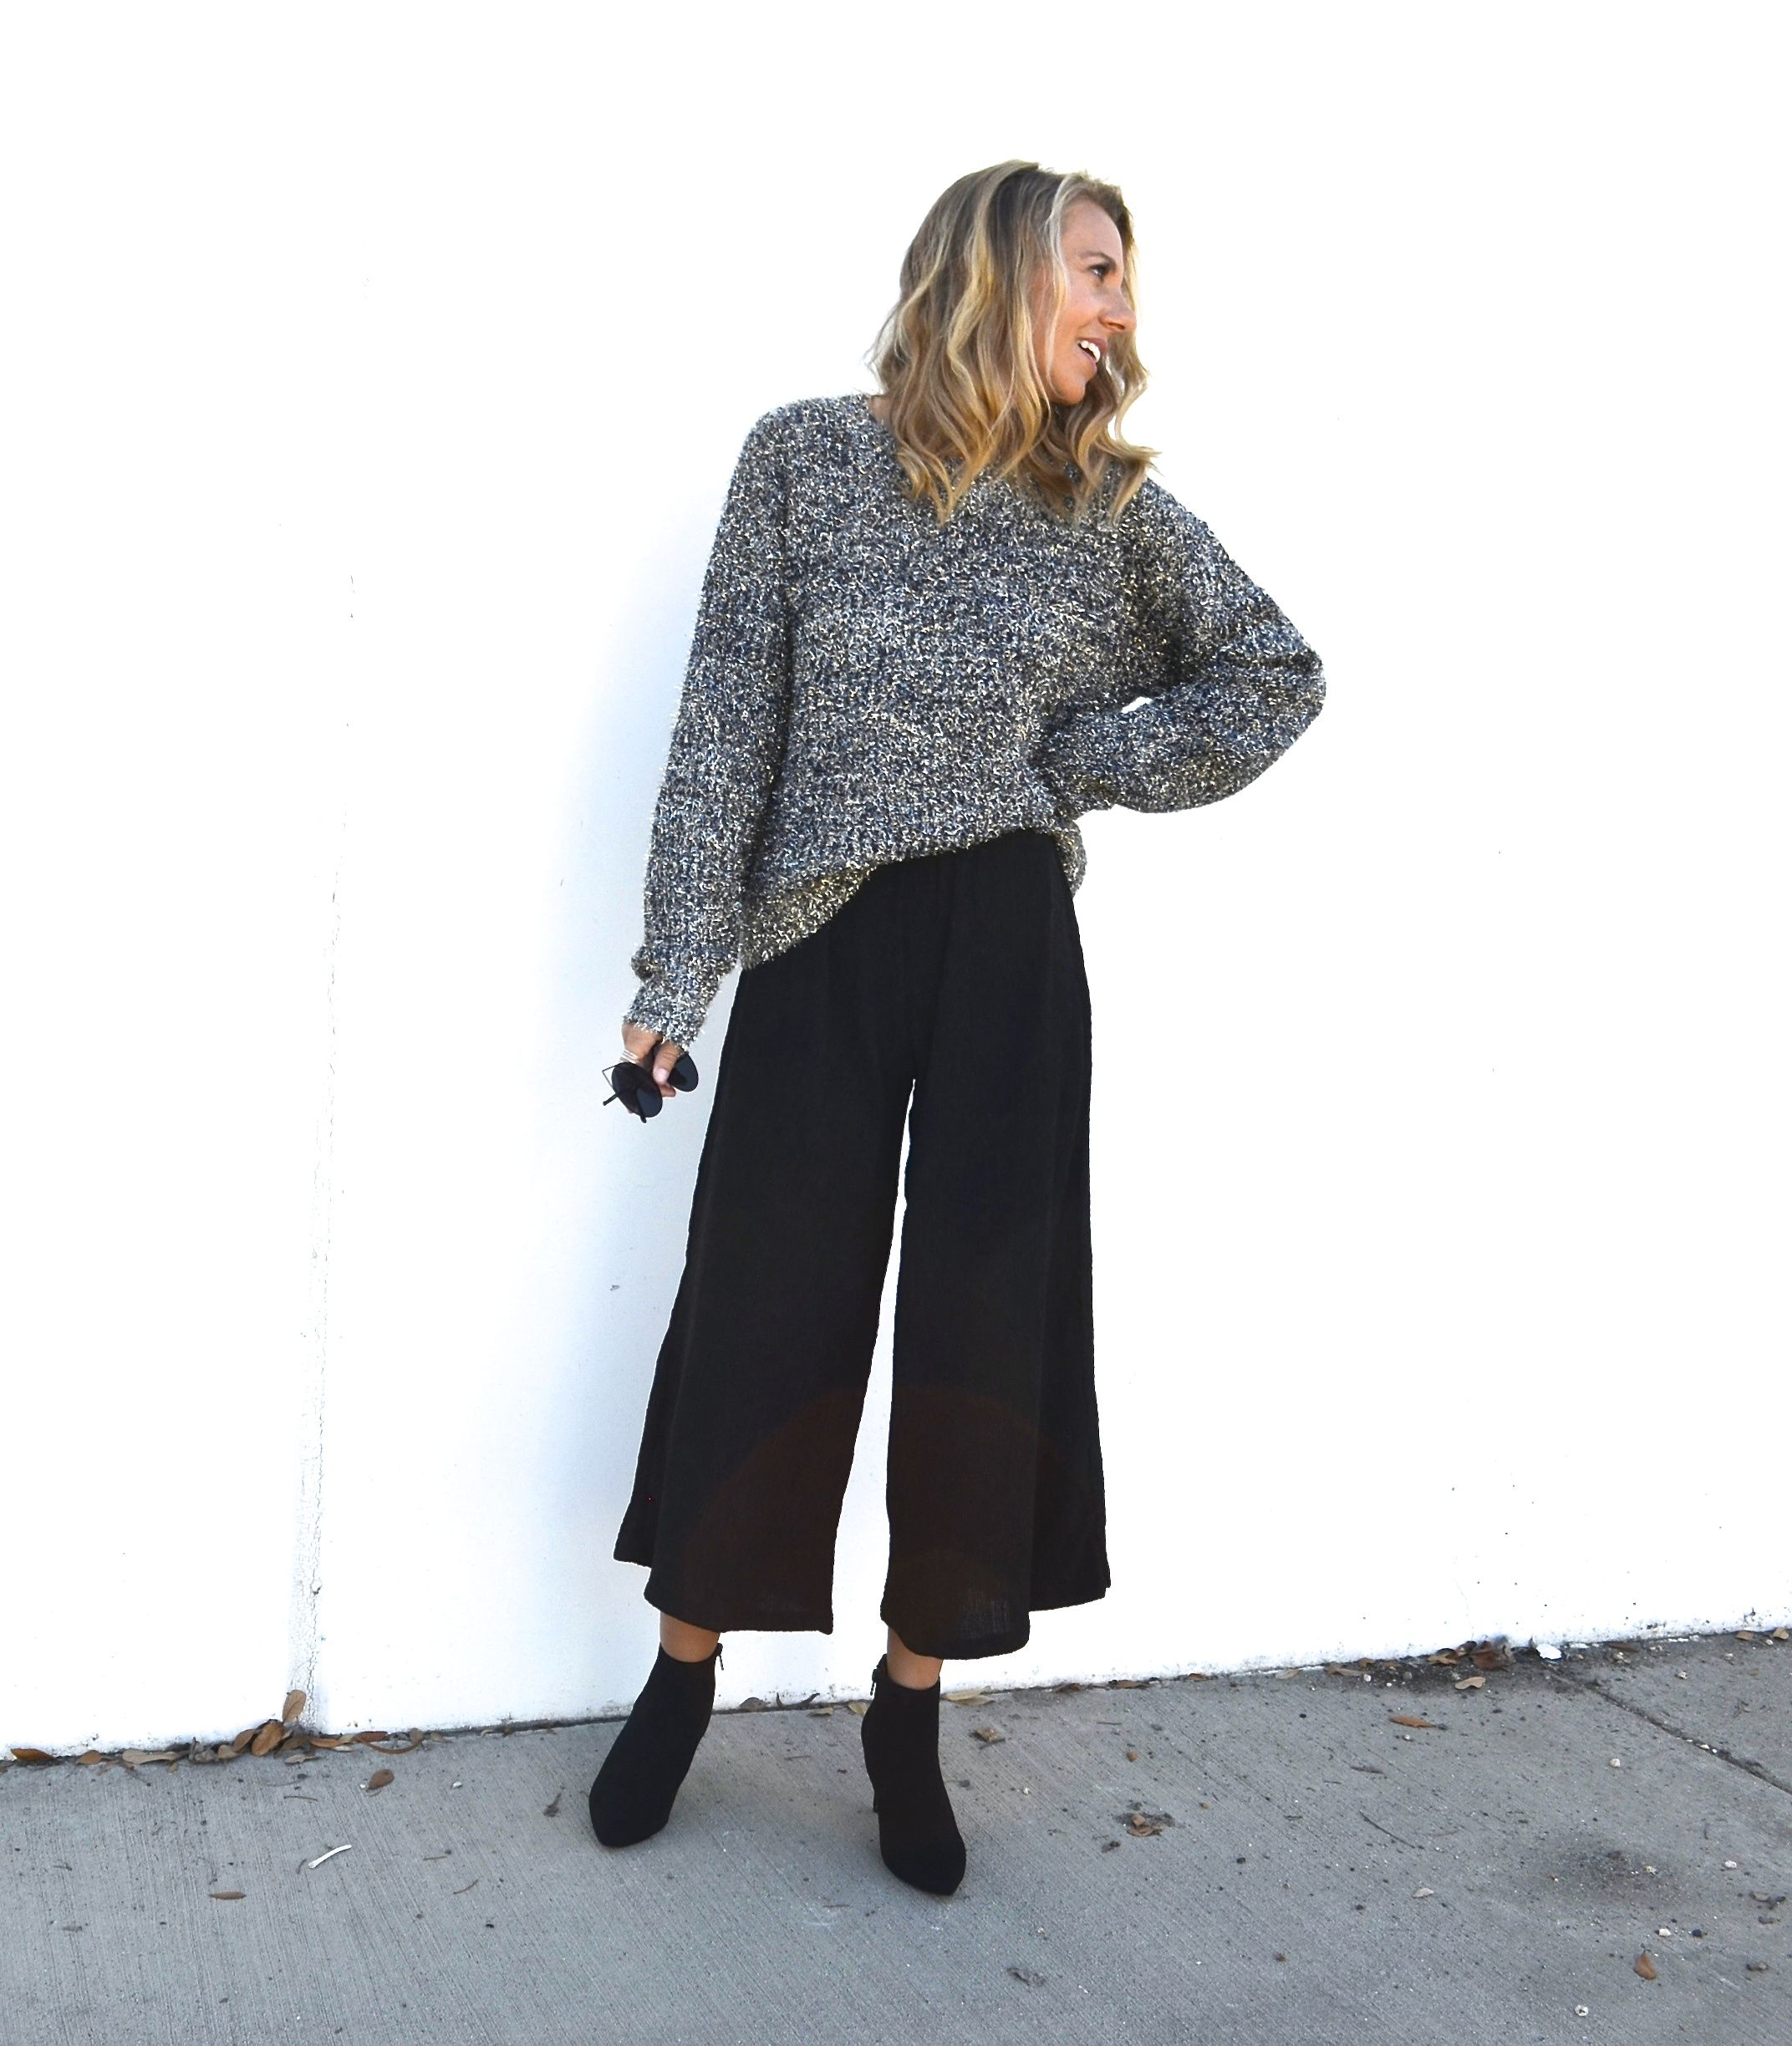 Styling A Metallic Sweater Two Ways - Jaclyn De Leon Style- fall outfit  inspiration + holiday style + casual street style + what to wear this  holiday + affordable style + forever 21 + how to style the metallic  trend + mom style + black crop flare pants